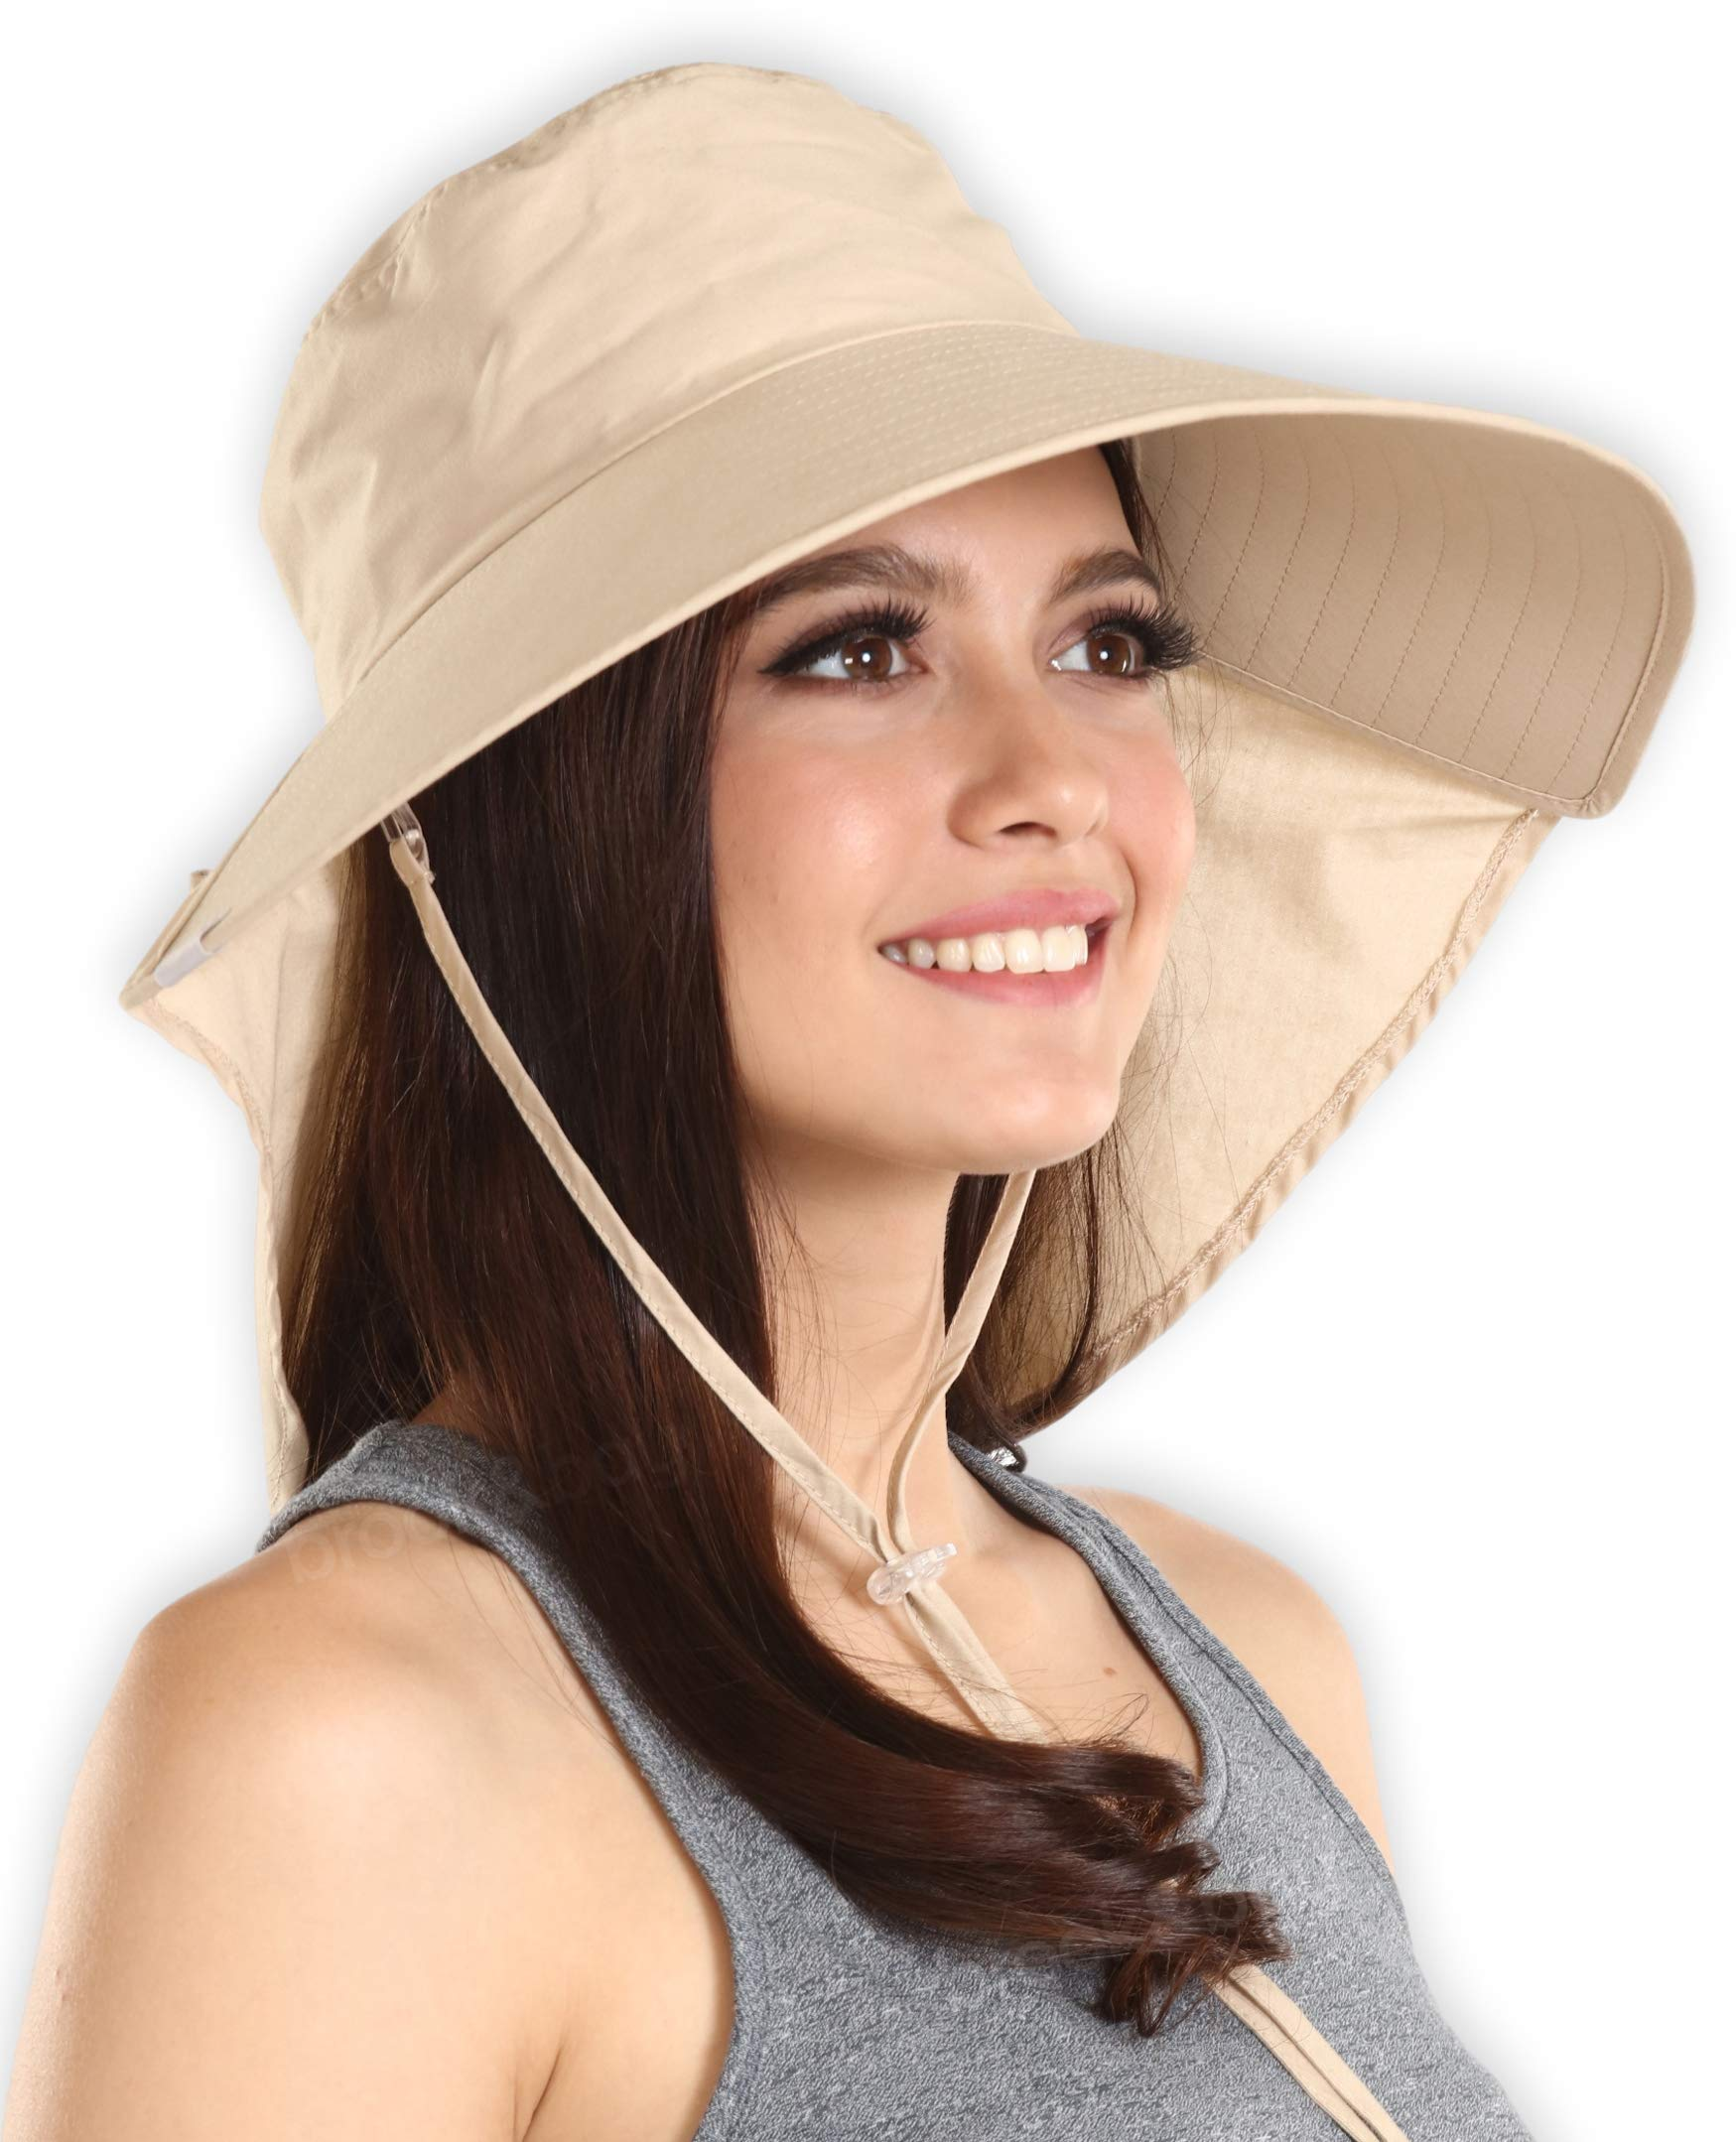 Brook + Bay UV Protection Cotton Sun Hat with Ponytail Hole & Chin Strap - Packable & Stylish Wide Brim Summer Hat for Women. Perfect for Beach Travels, Hiking, Gardening & Outdoor Adventures